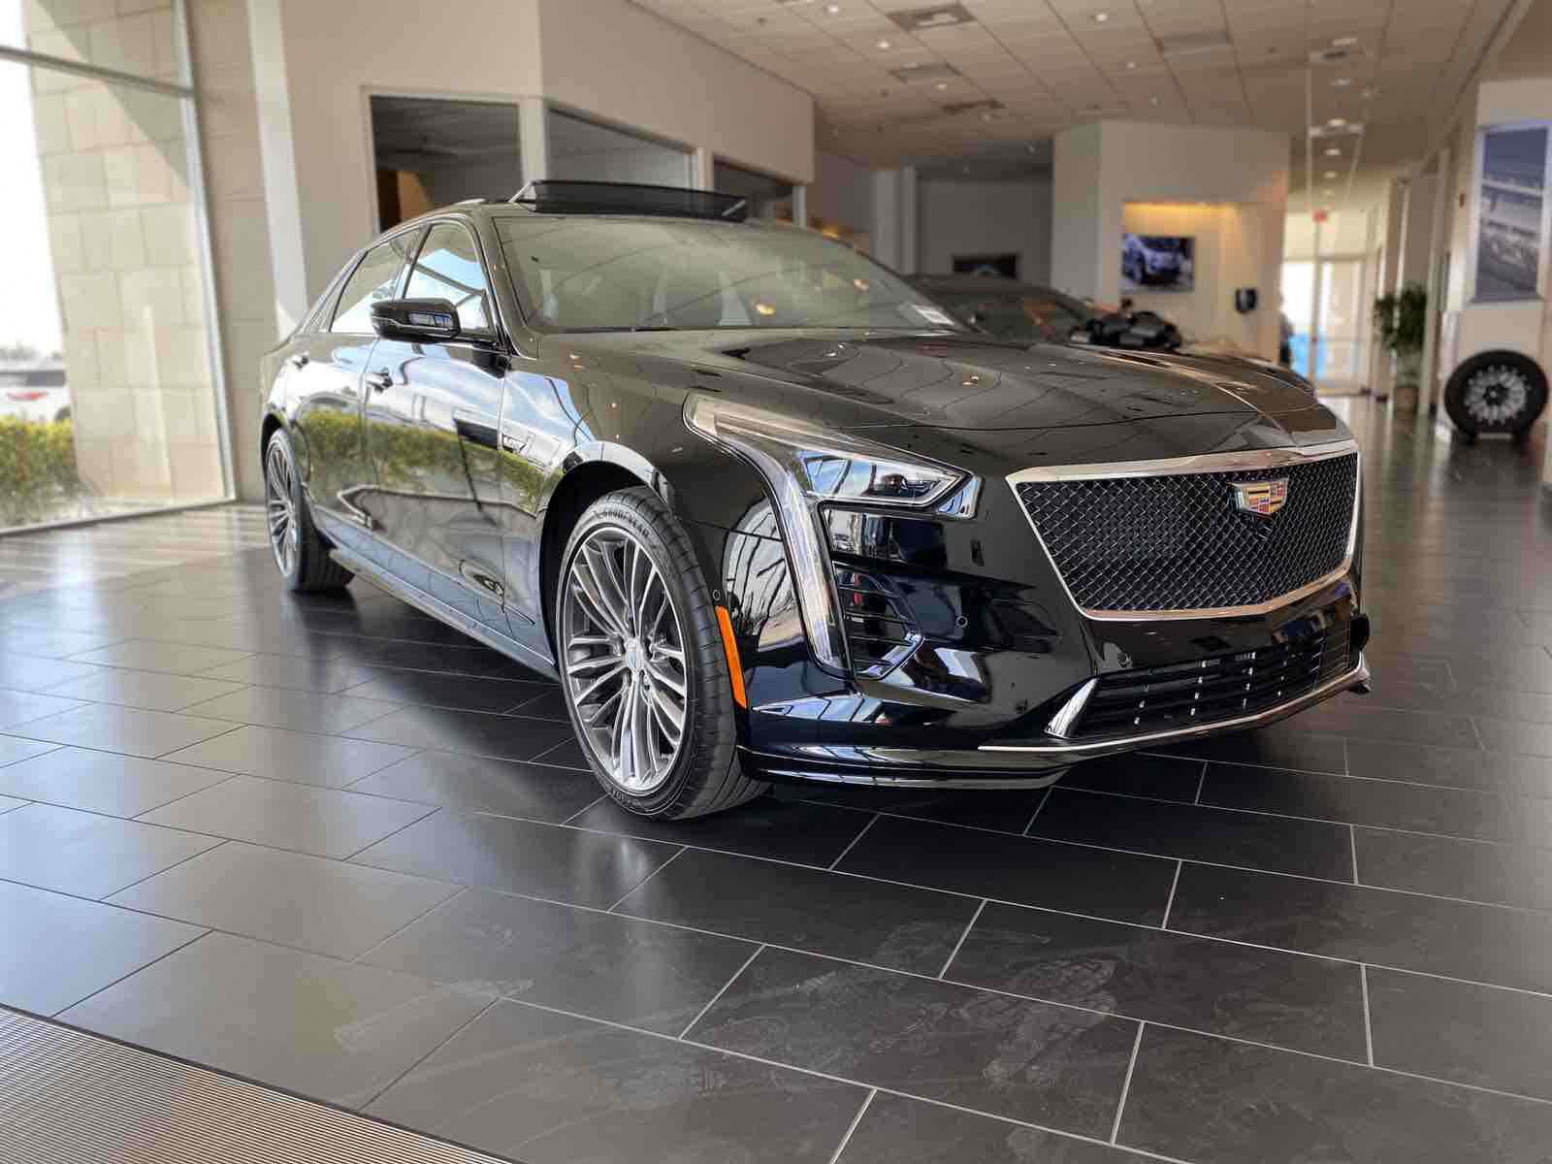 Cadillac CT8 8 for sale. Exterior color : Black.